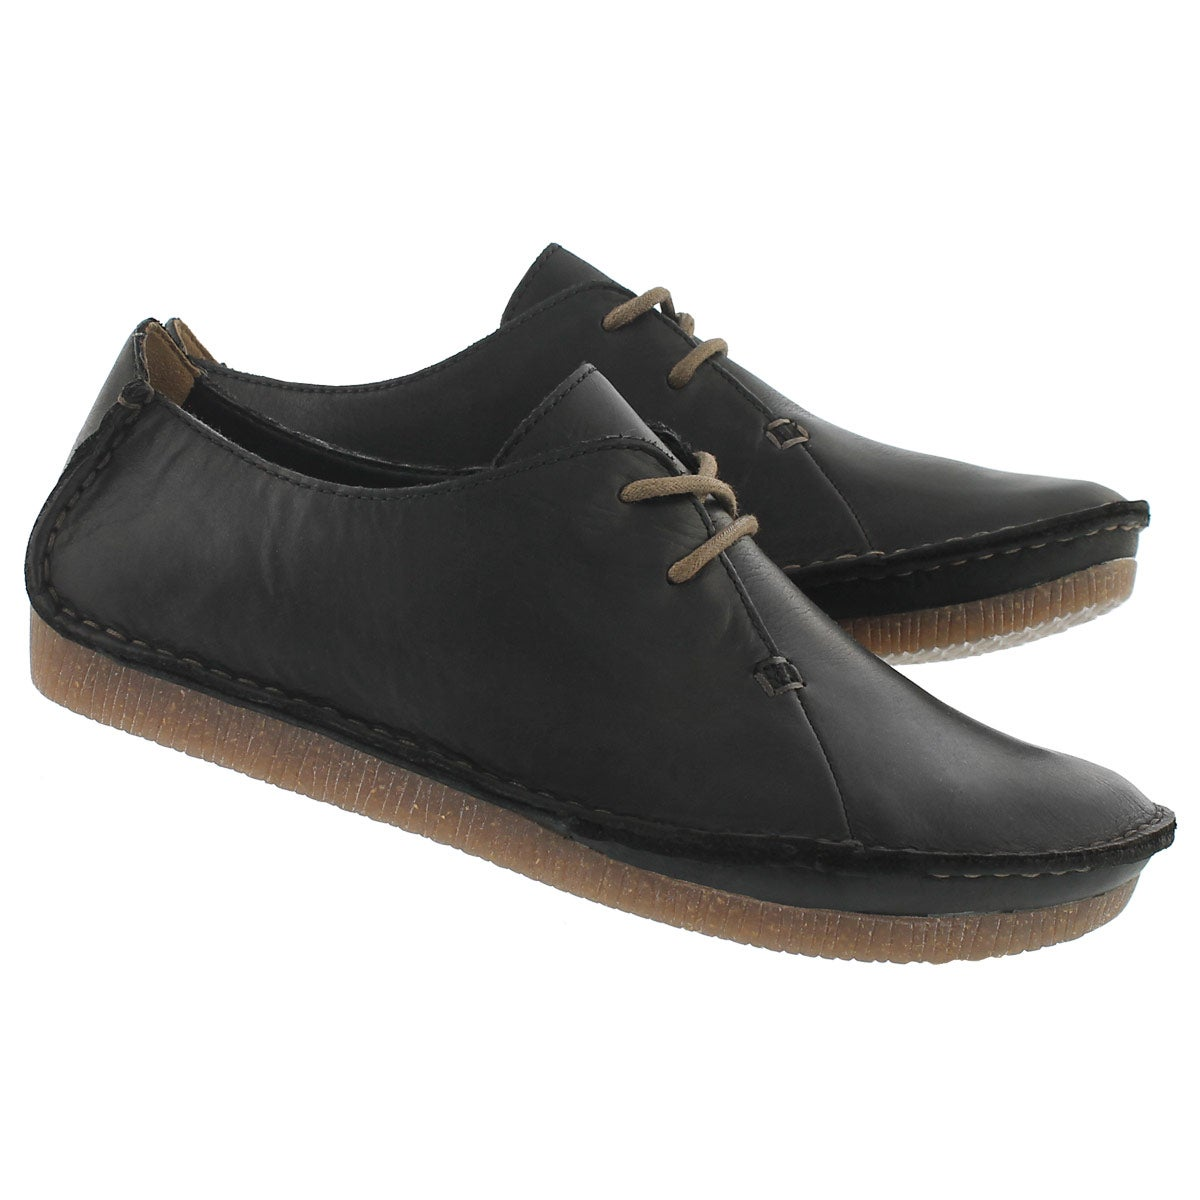 Lds Janey Mae blk casual oxford